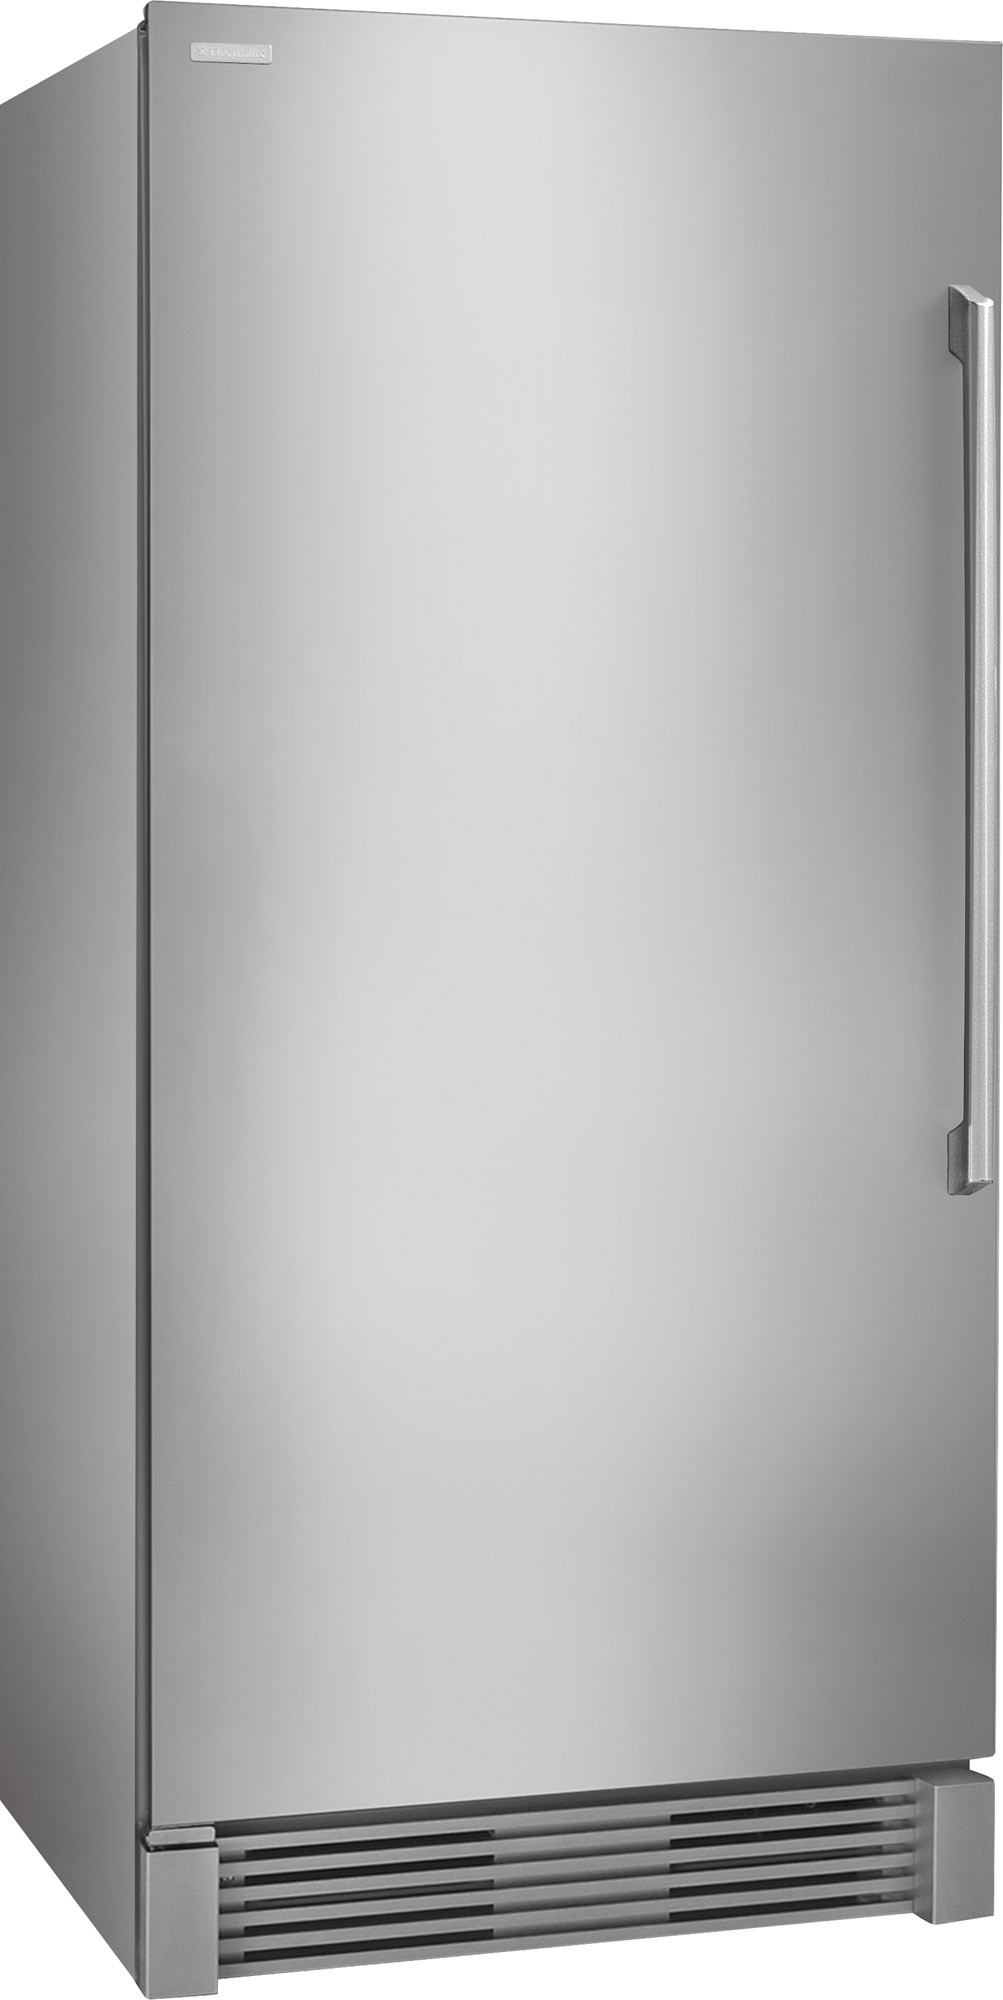 Electrolux Ei32af80qs 32 Inch Built In All Freezer With 18